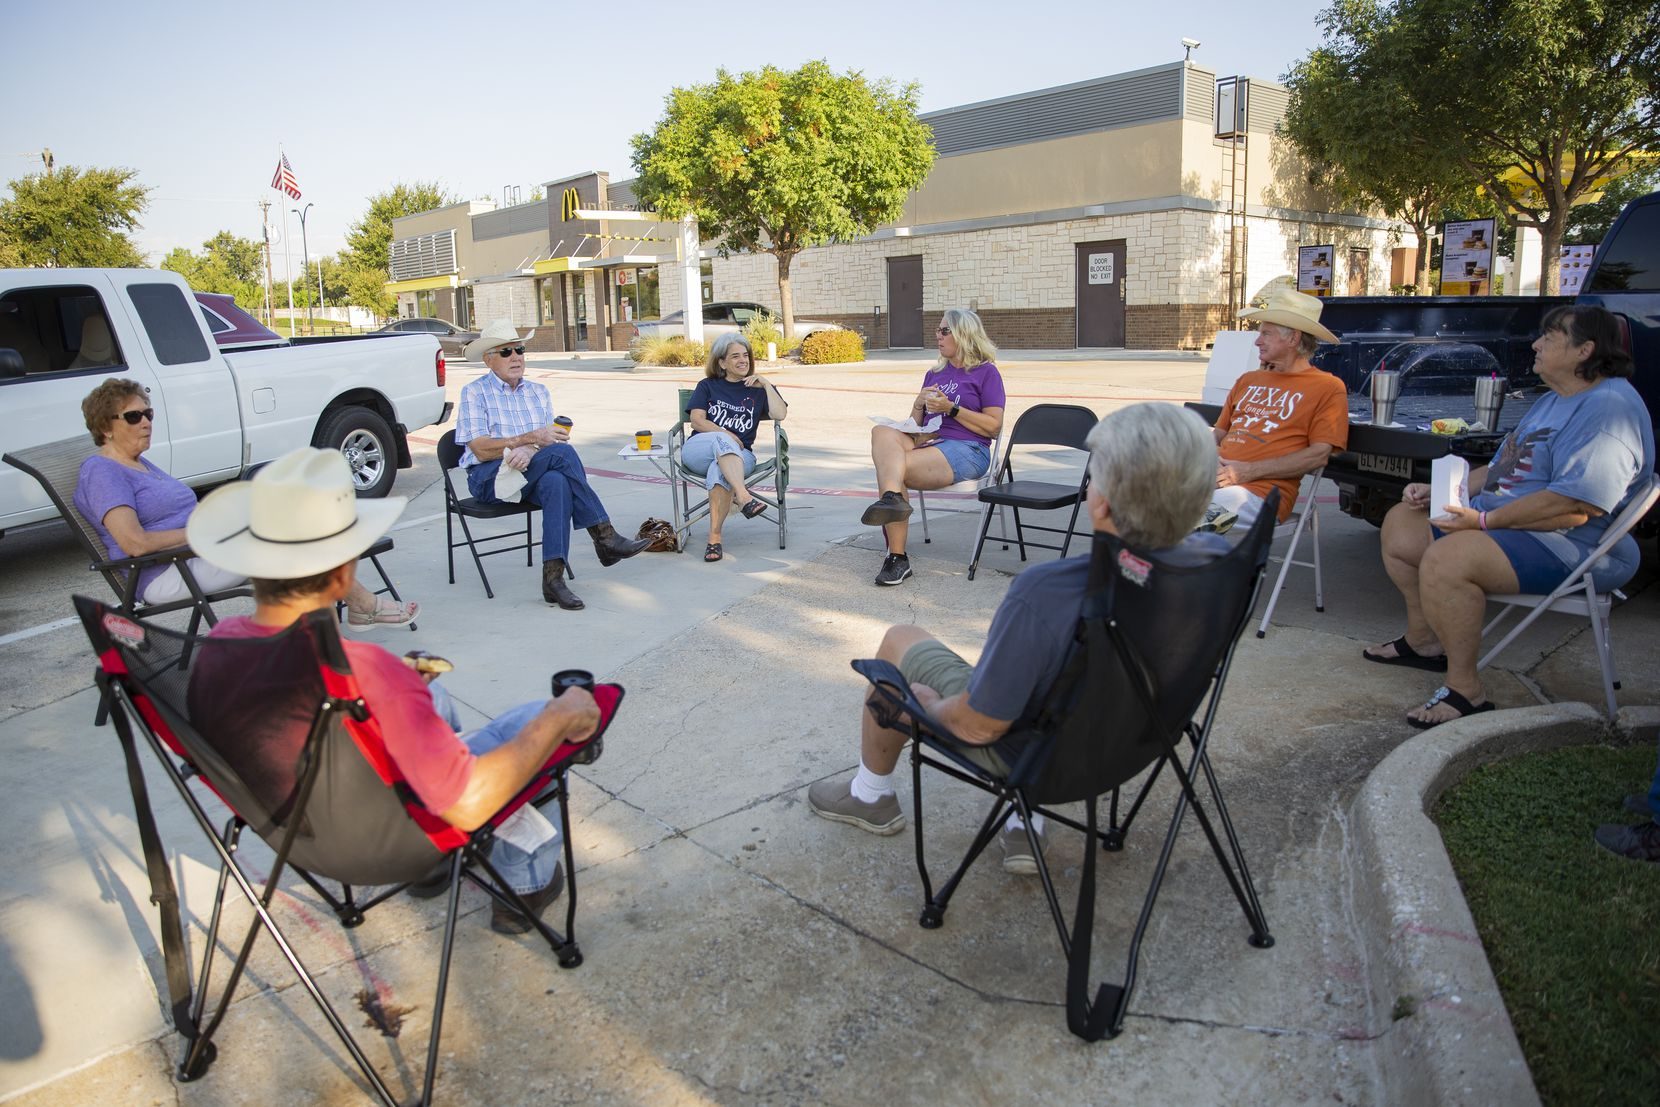 A group of retired friends eat and socialize at the McDonald's parking lot on Aug. 22 in Keller.